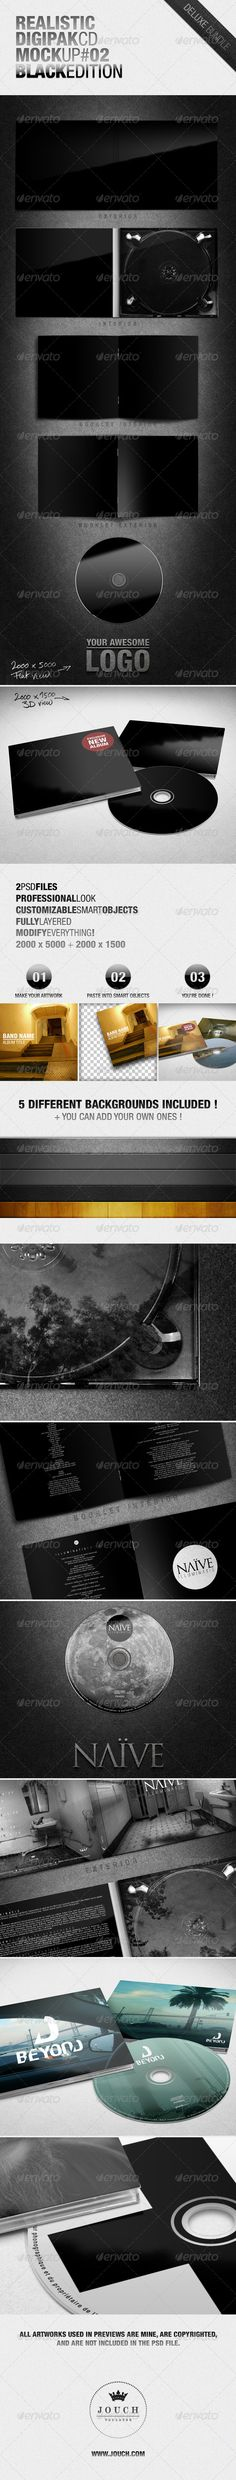 Buy Realistic Digipak CD Mockup Black Edition by jouch on GraphicRiver. PLEASE DON'T FORGET TO RATE! * Here is a realistic presentation (mockup) of a cd albums (digipaks) and discs, for yo. Promotional Stickers, Cd Artwork, Cd Cover Design, Cd Album, Photoshop, Black Edition, Mockup Templates, Graphic Design Branding, Social Media Graphics